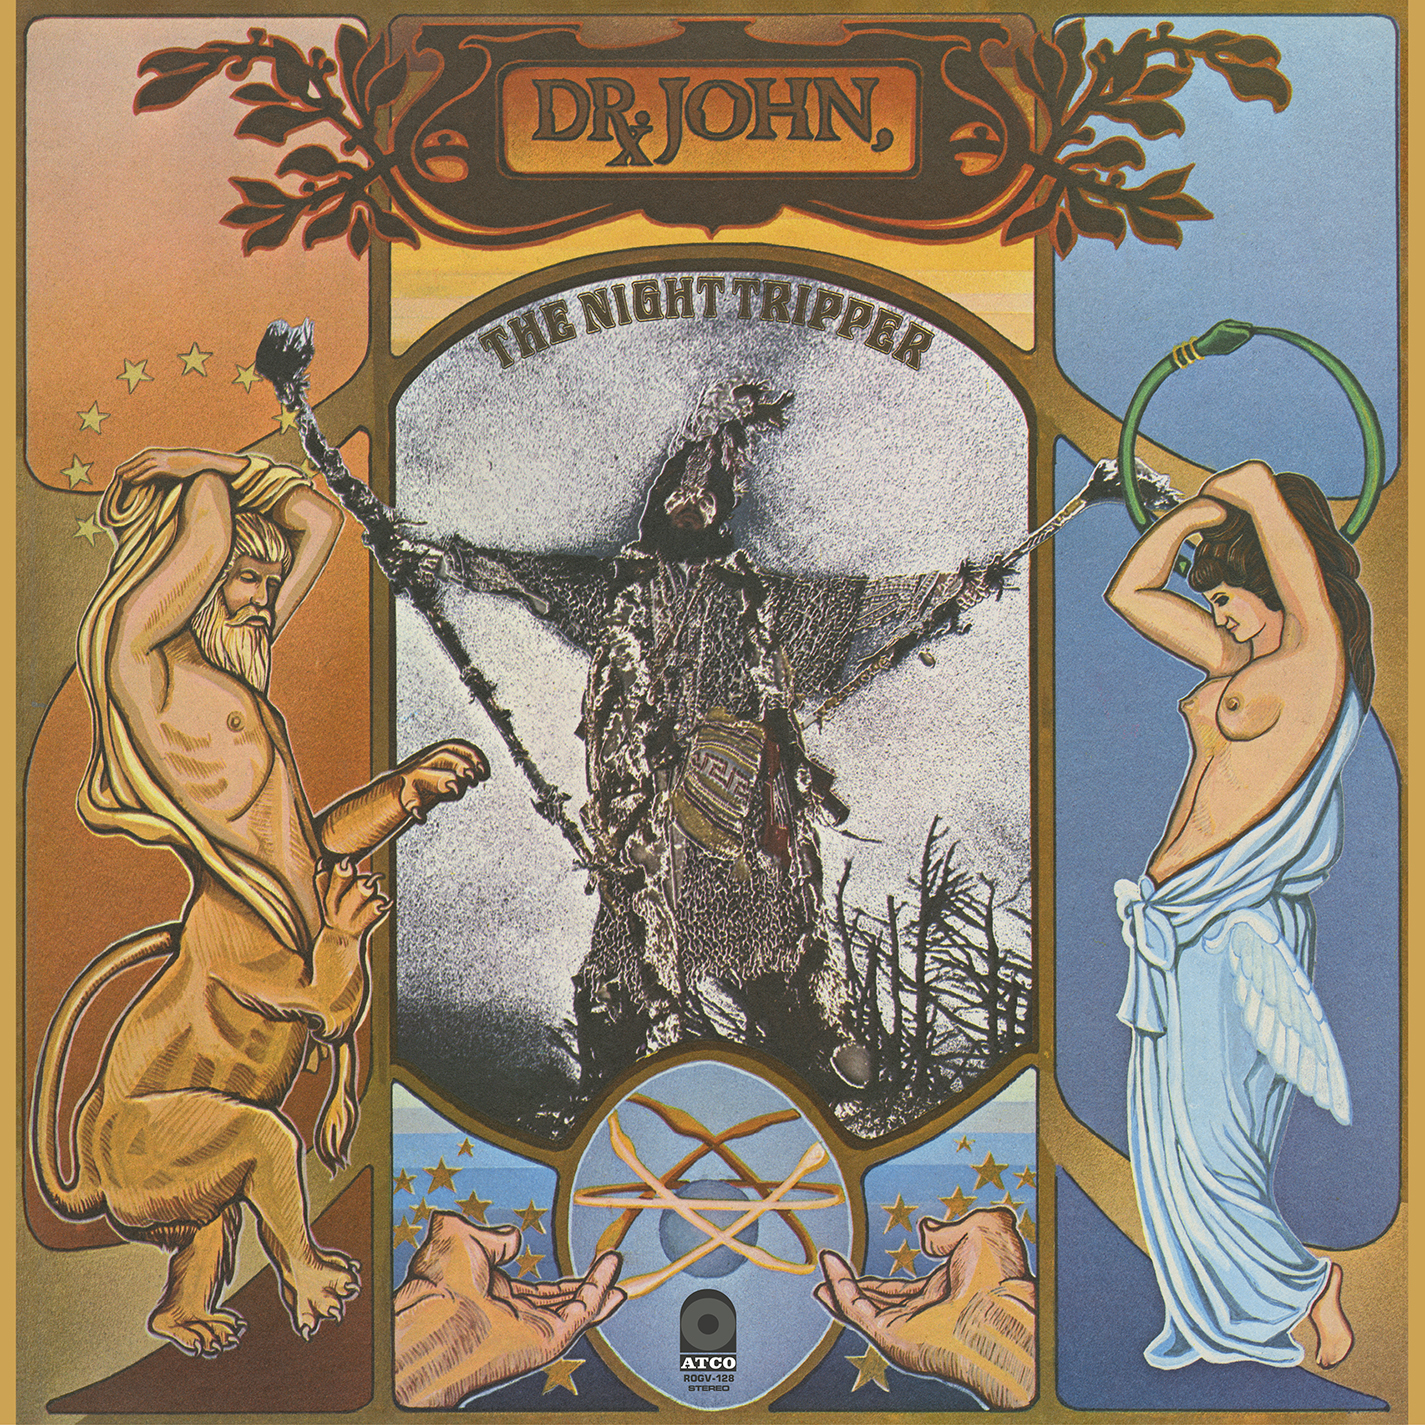 Dr. John, The Night Tripper - The Sun, Moon & Herbs Deluxe 50th Anniversary Edition [RSD Drops 2021]